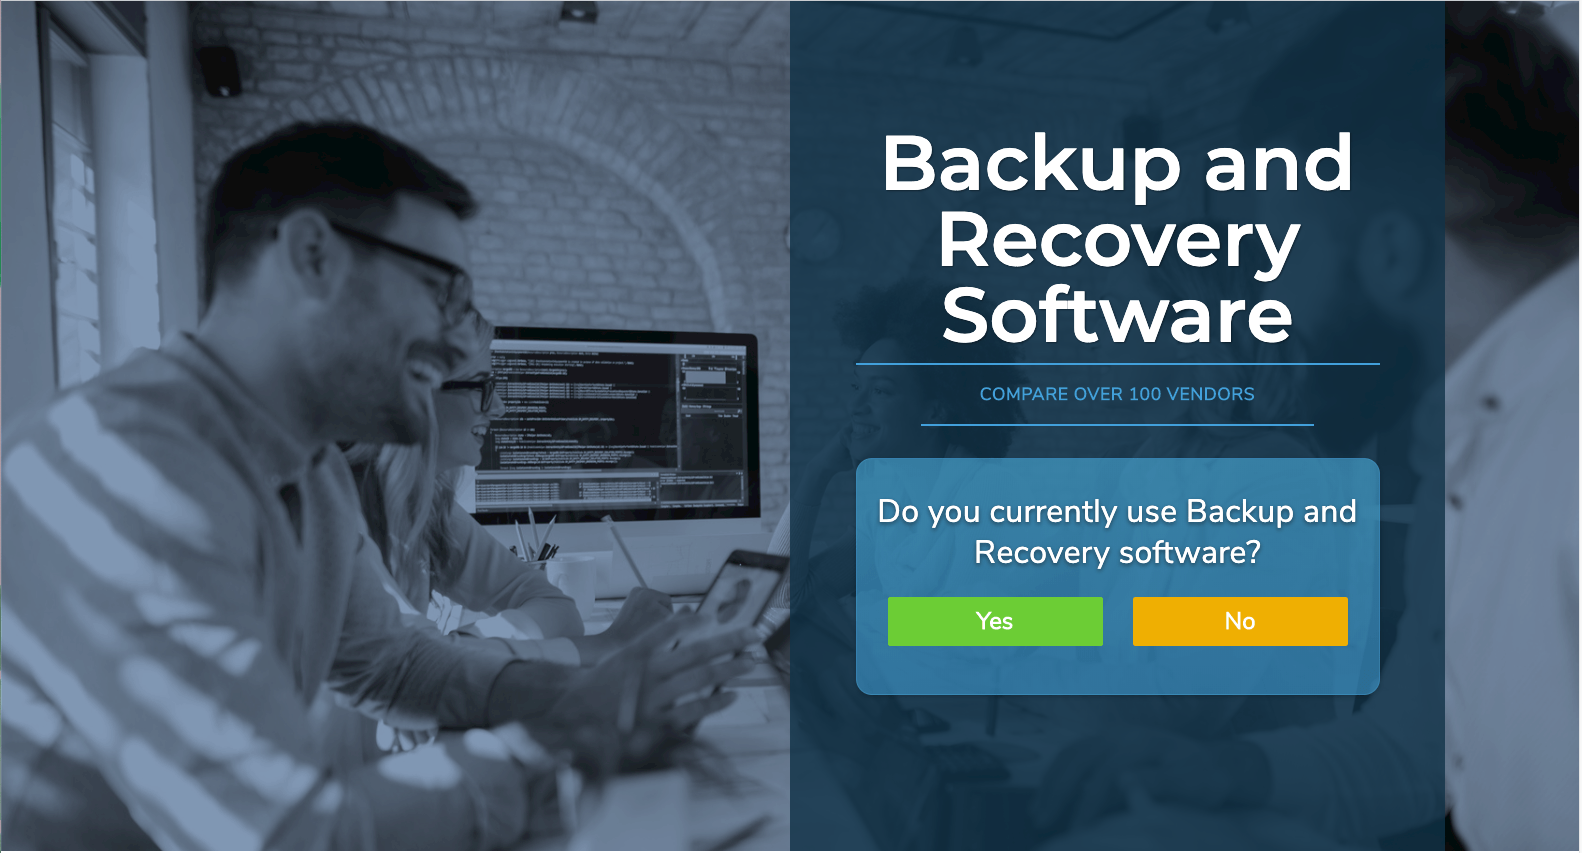 visit the backup and recovery software overview page